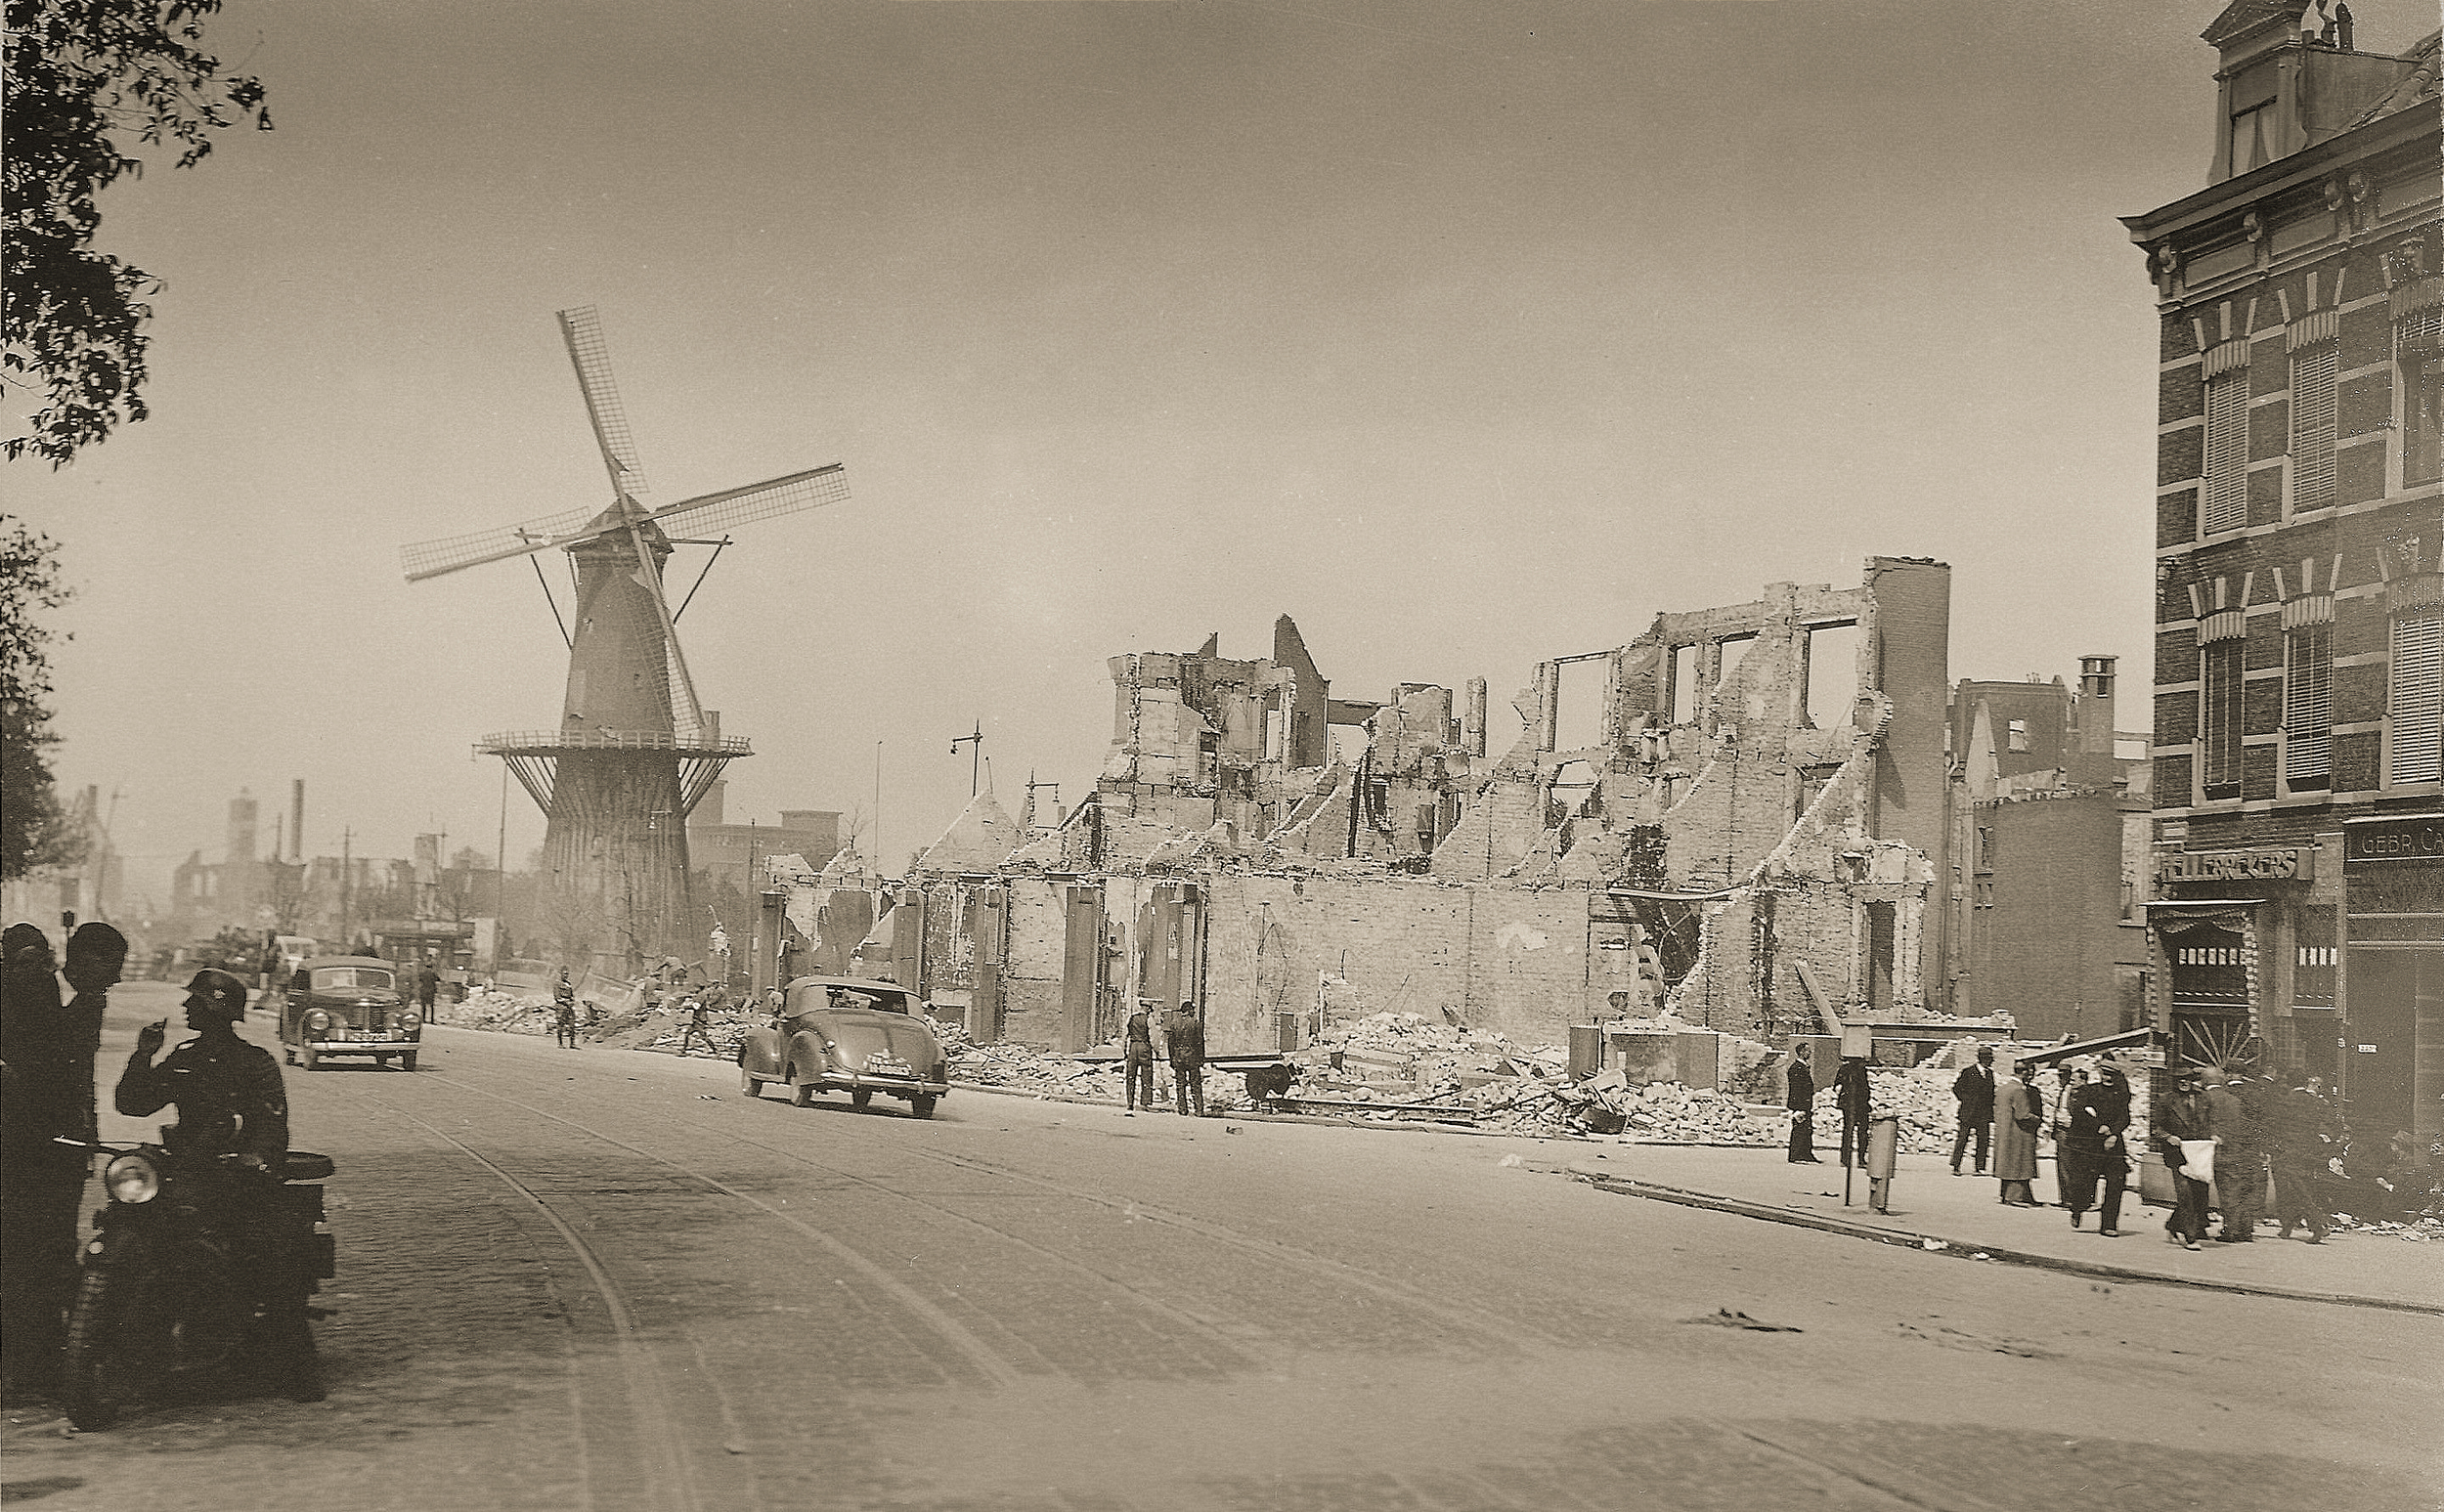 photo MarcelBerendsen taken May 1940 during the Nazi invasion of Holland